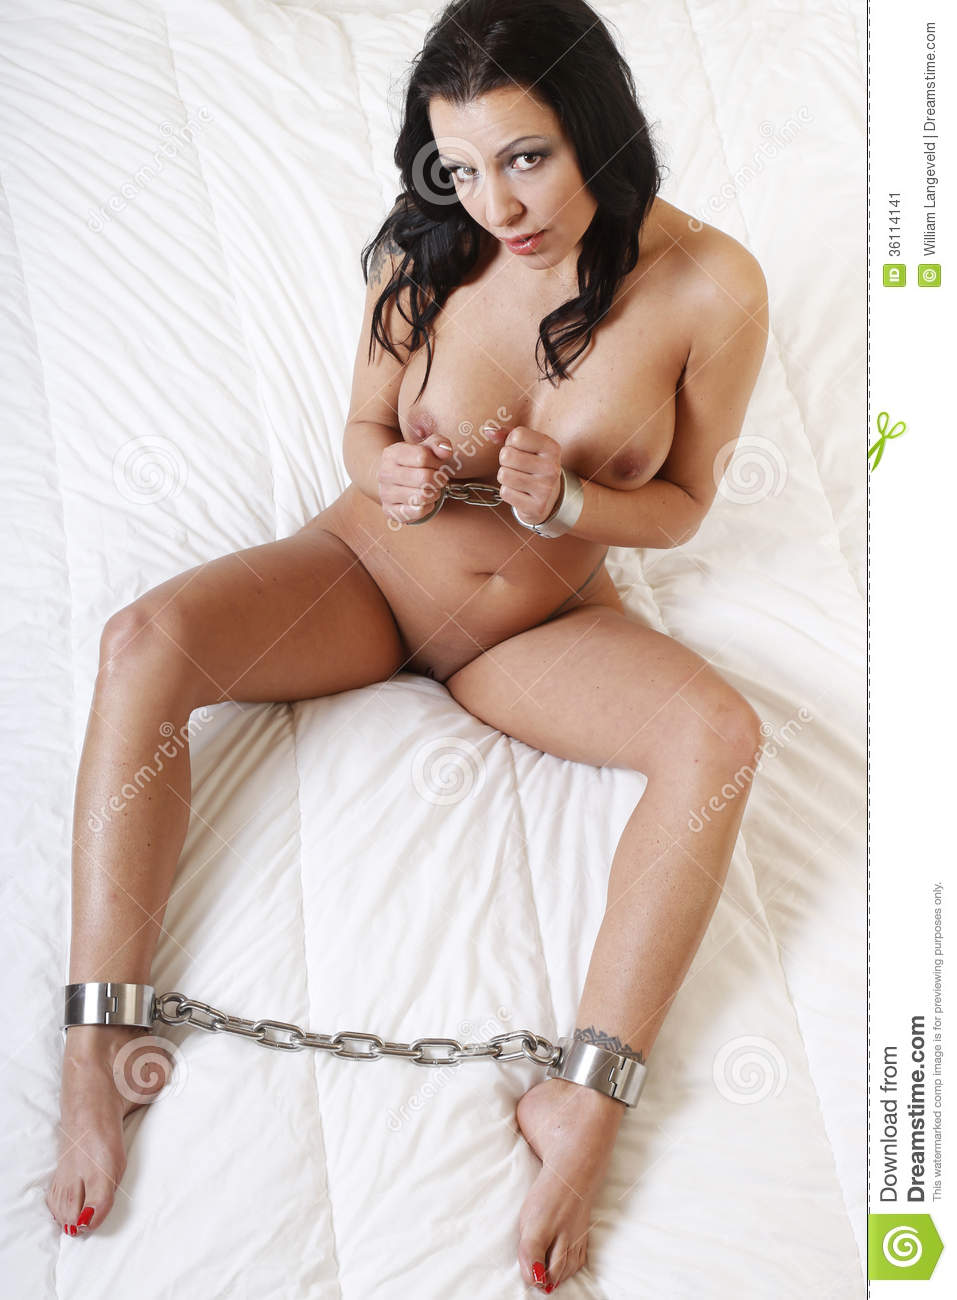 video public Naked bondage handcuff sex